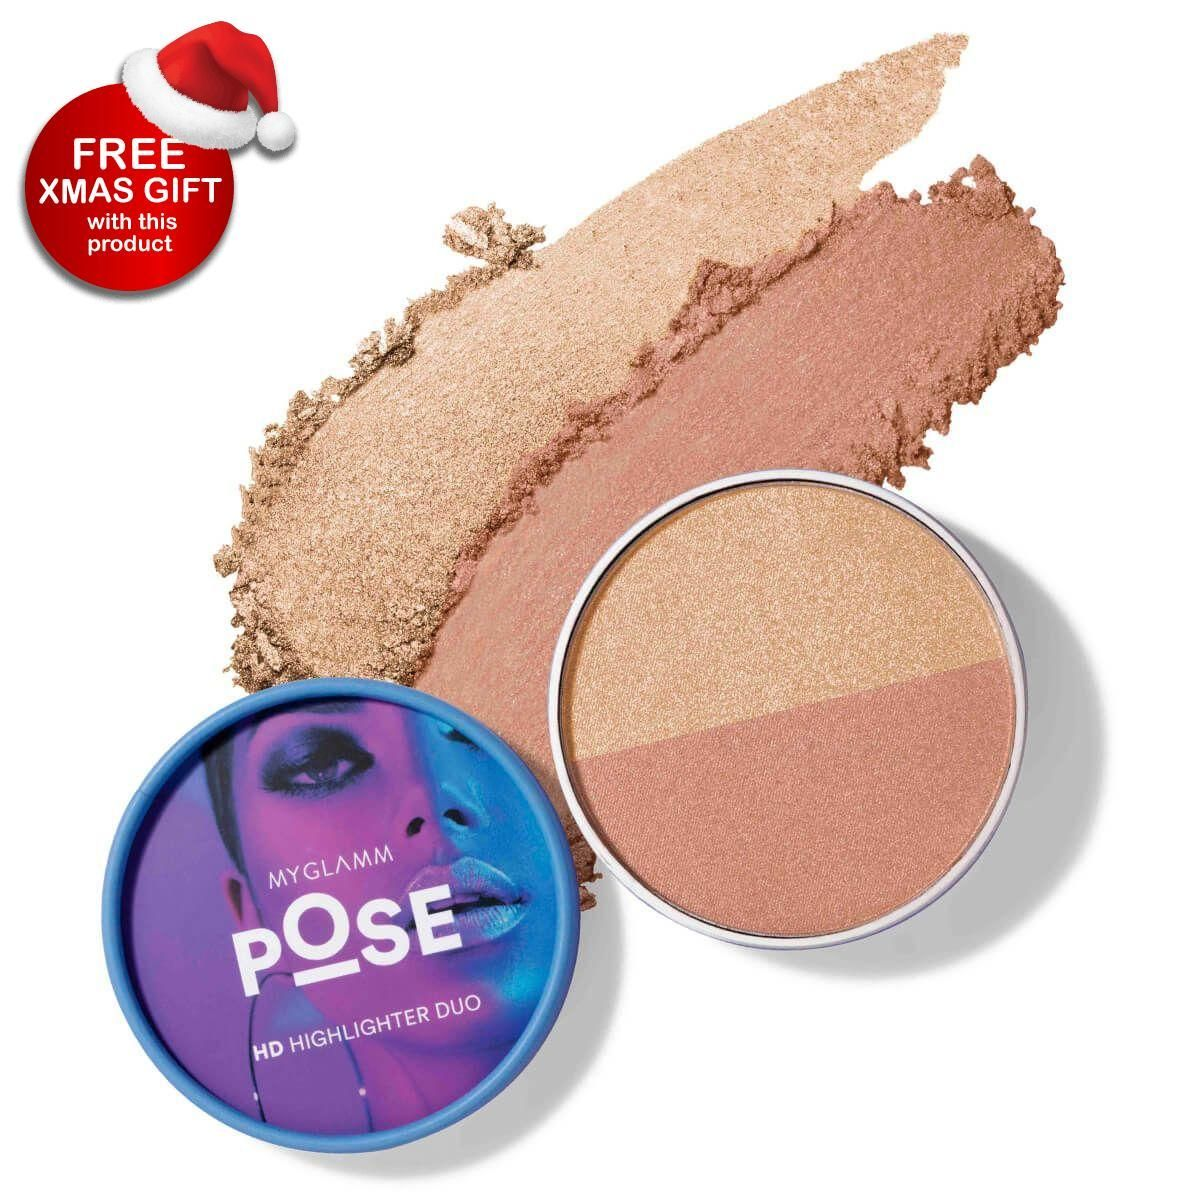 POSE HD Highlighter Duo - Champagne | Rose Gold